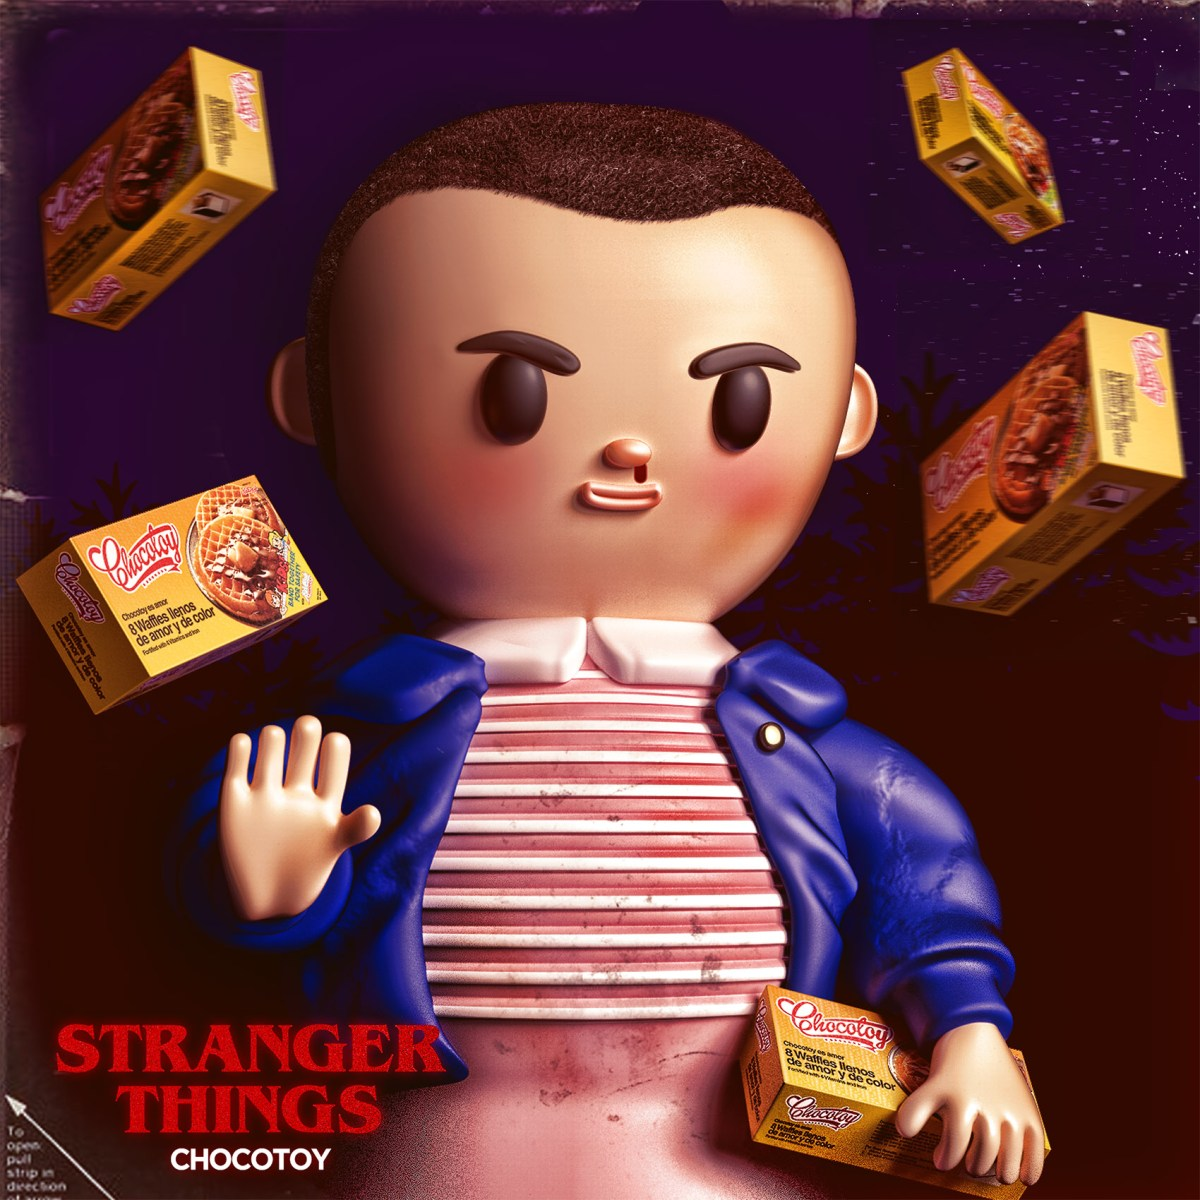 stranger-things-chocotoy-moss-and-fog-6